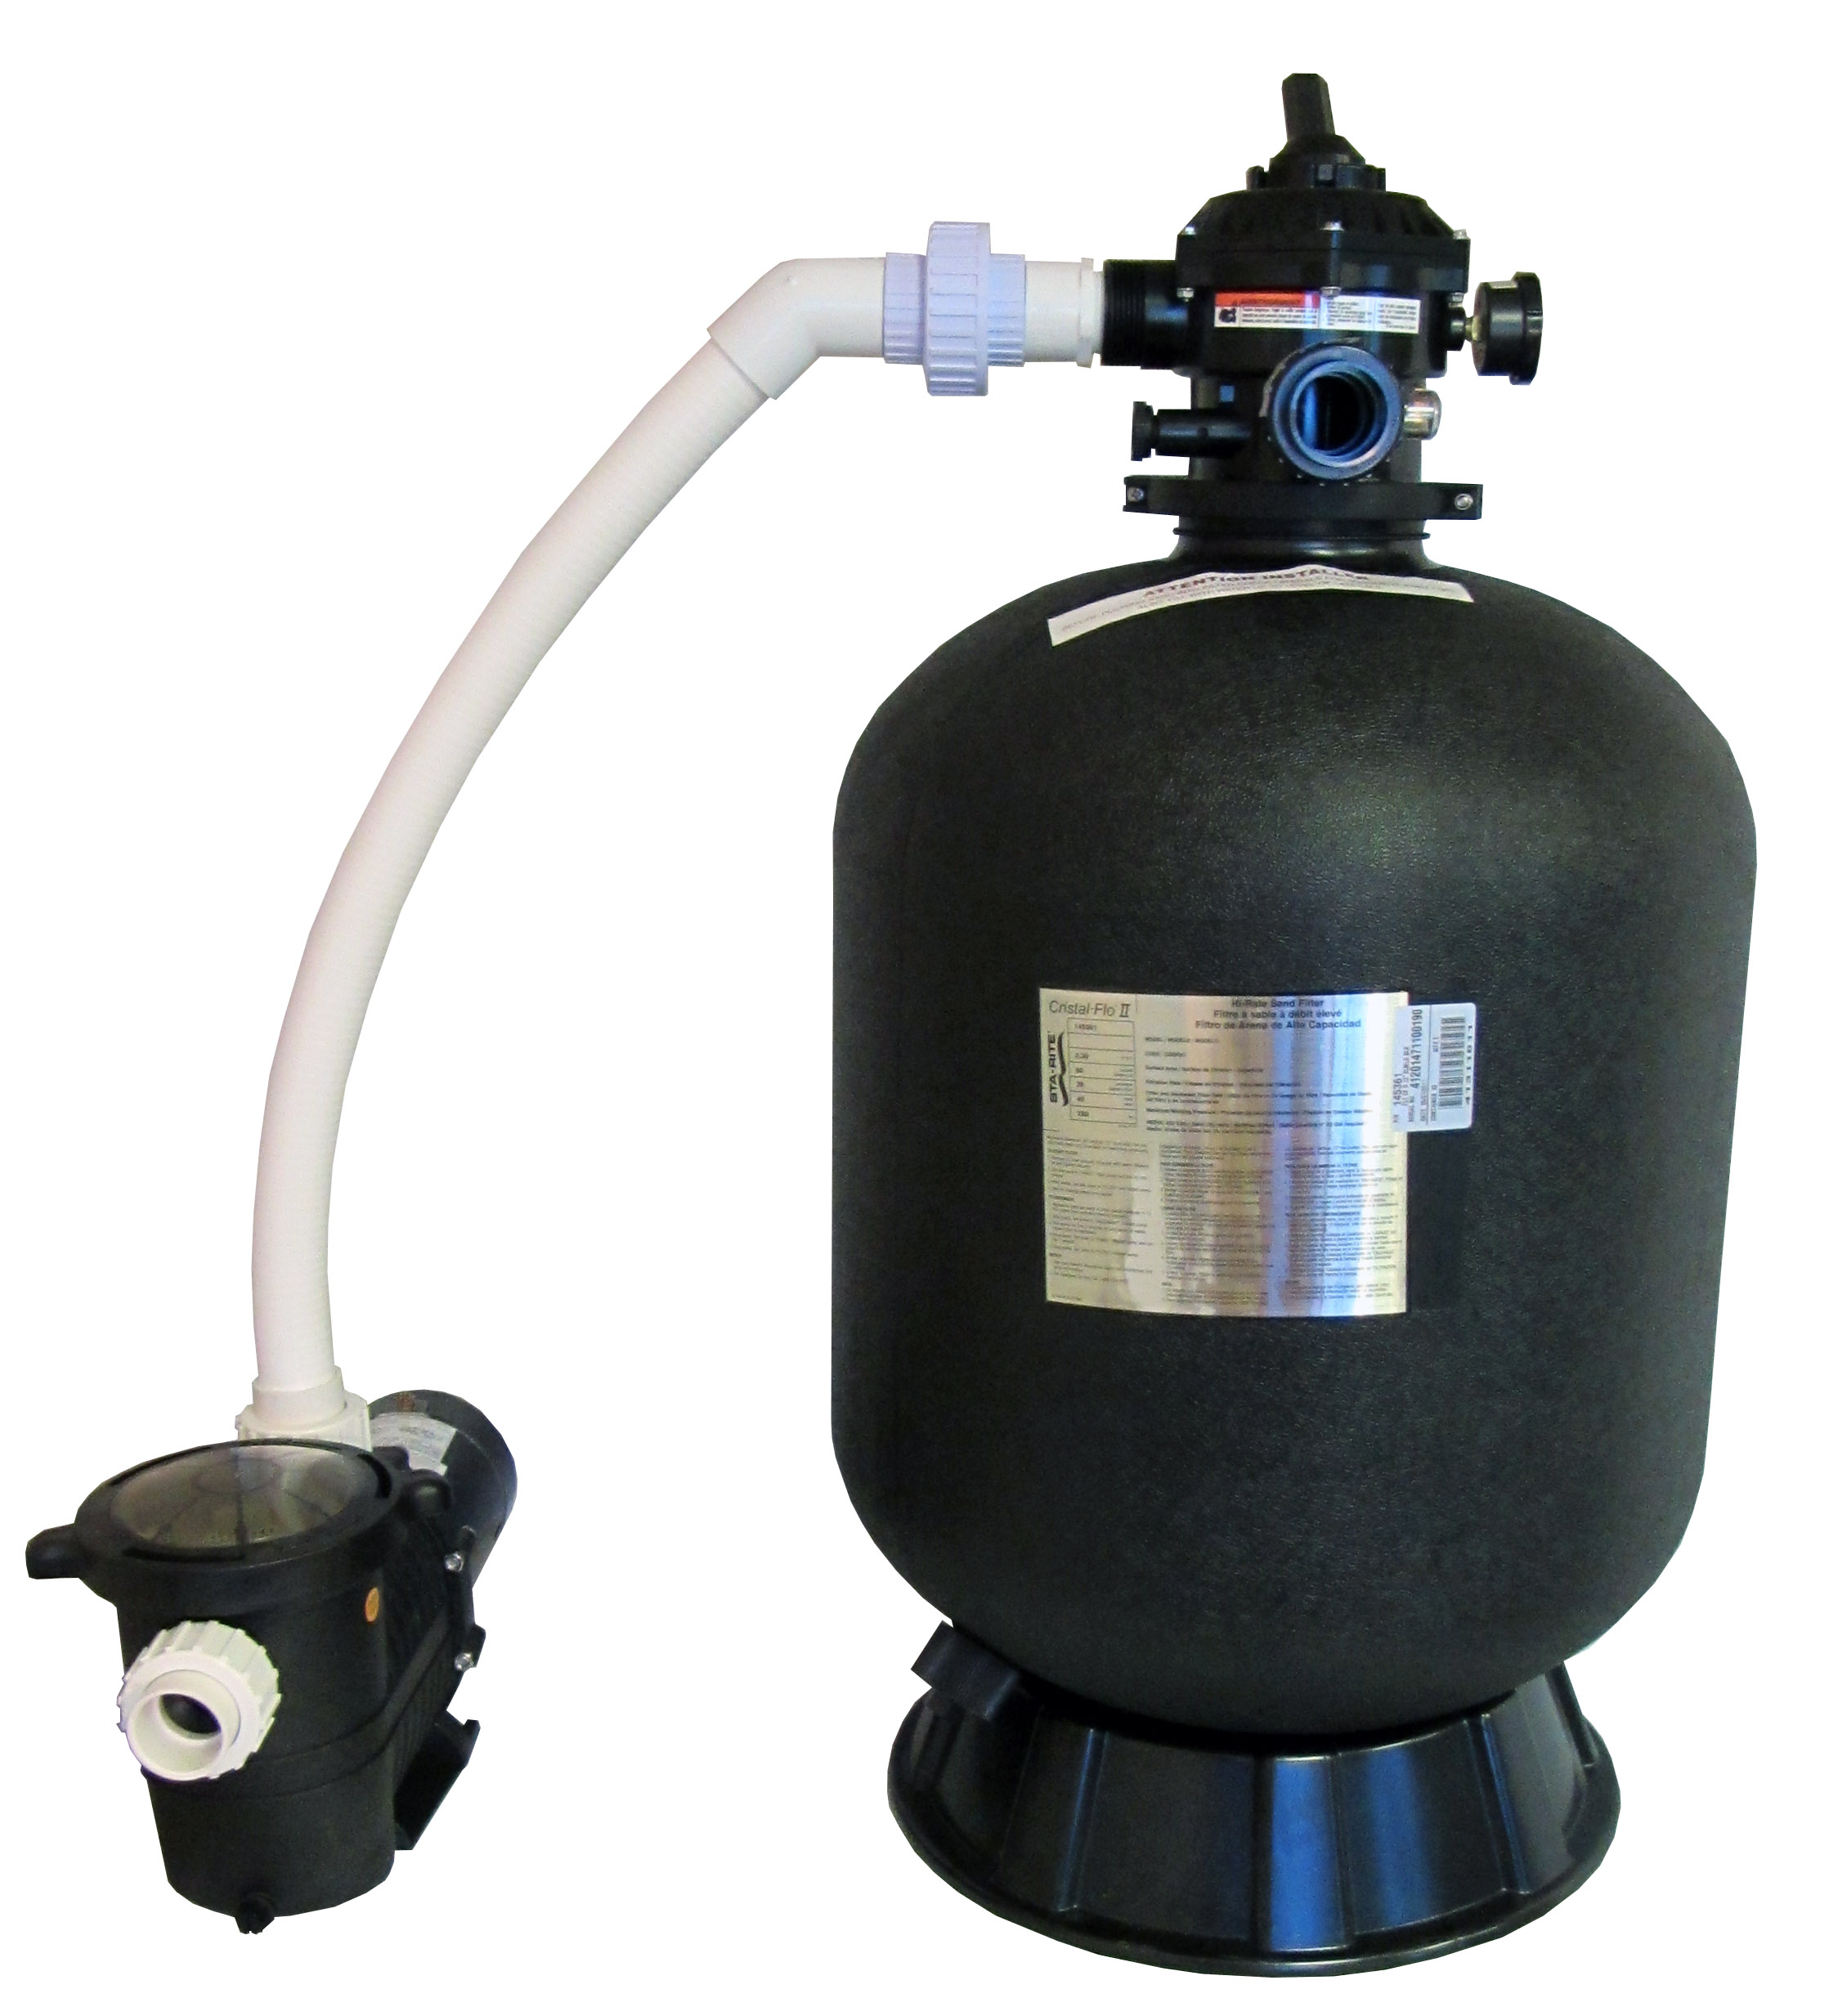 sta rite in ground swimming pool sand filter system with 0